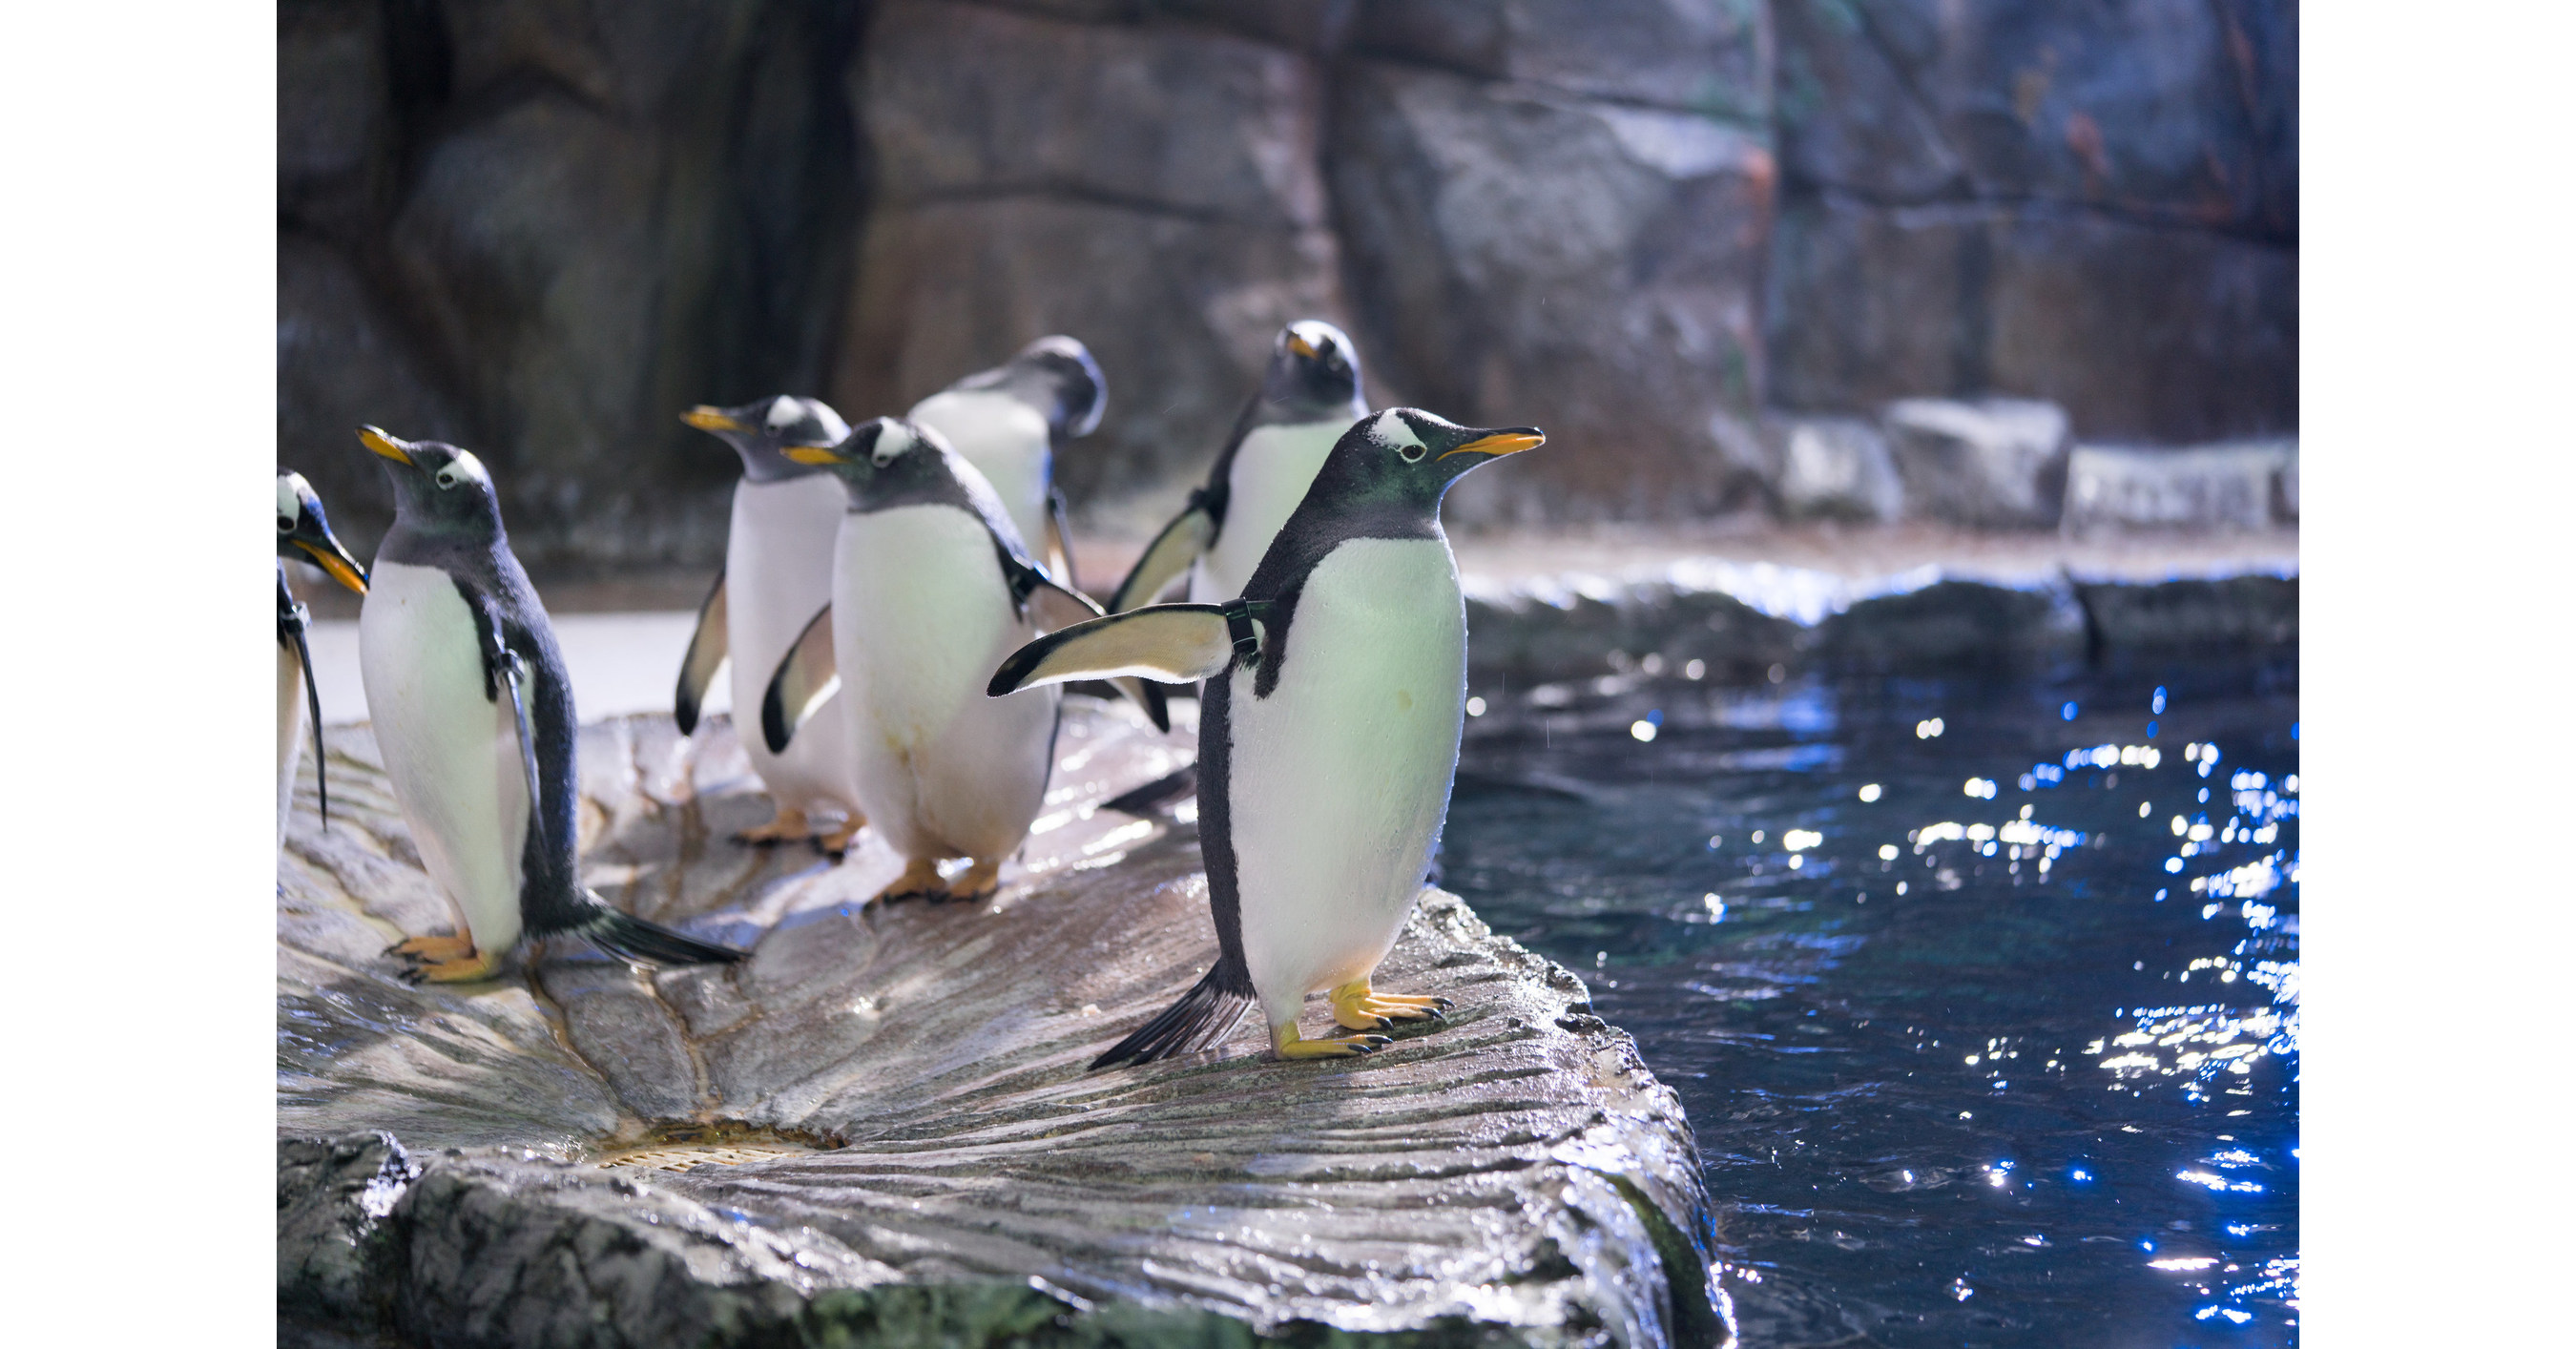 Loveland Living Planet Aquarium Penguins Focus of First ...